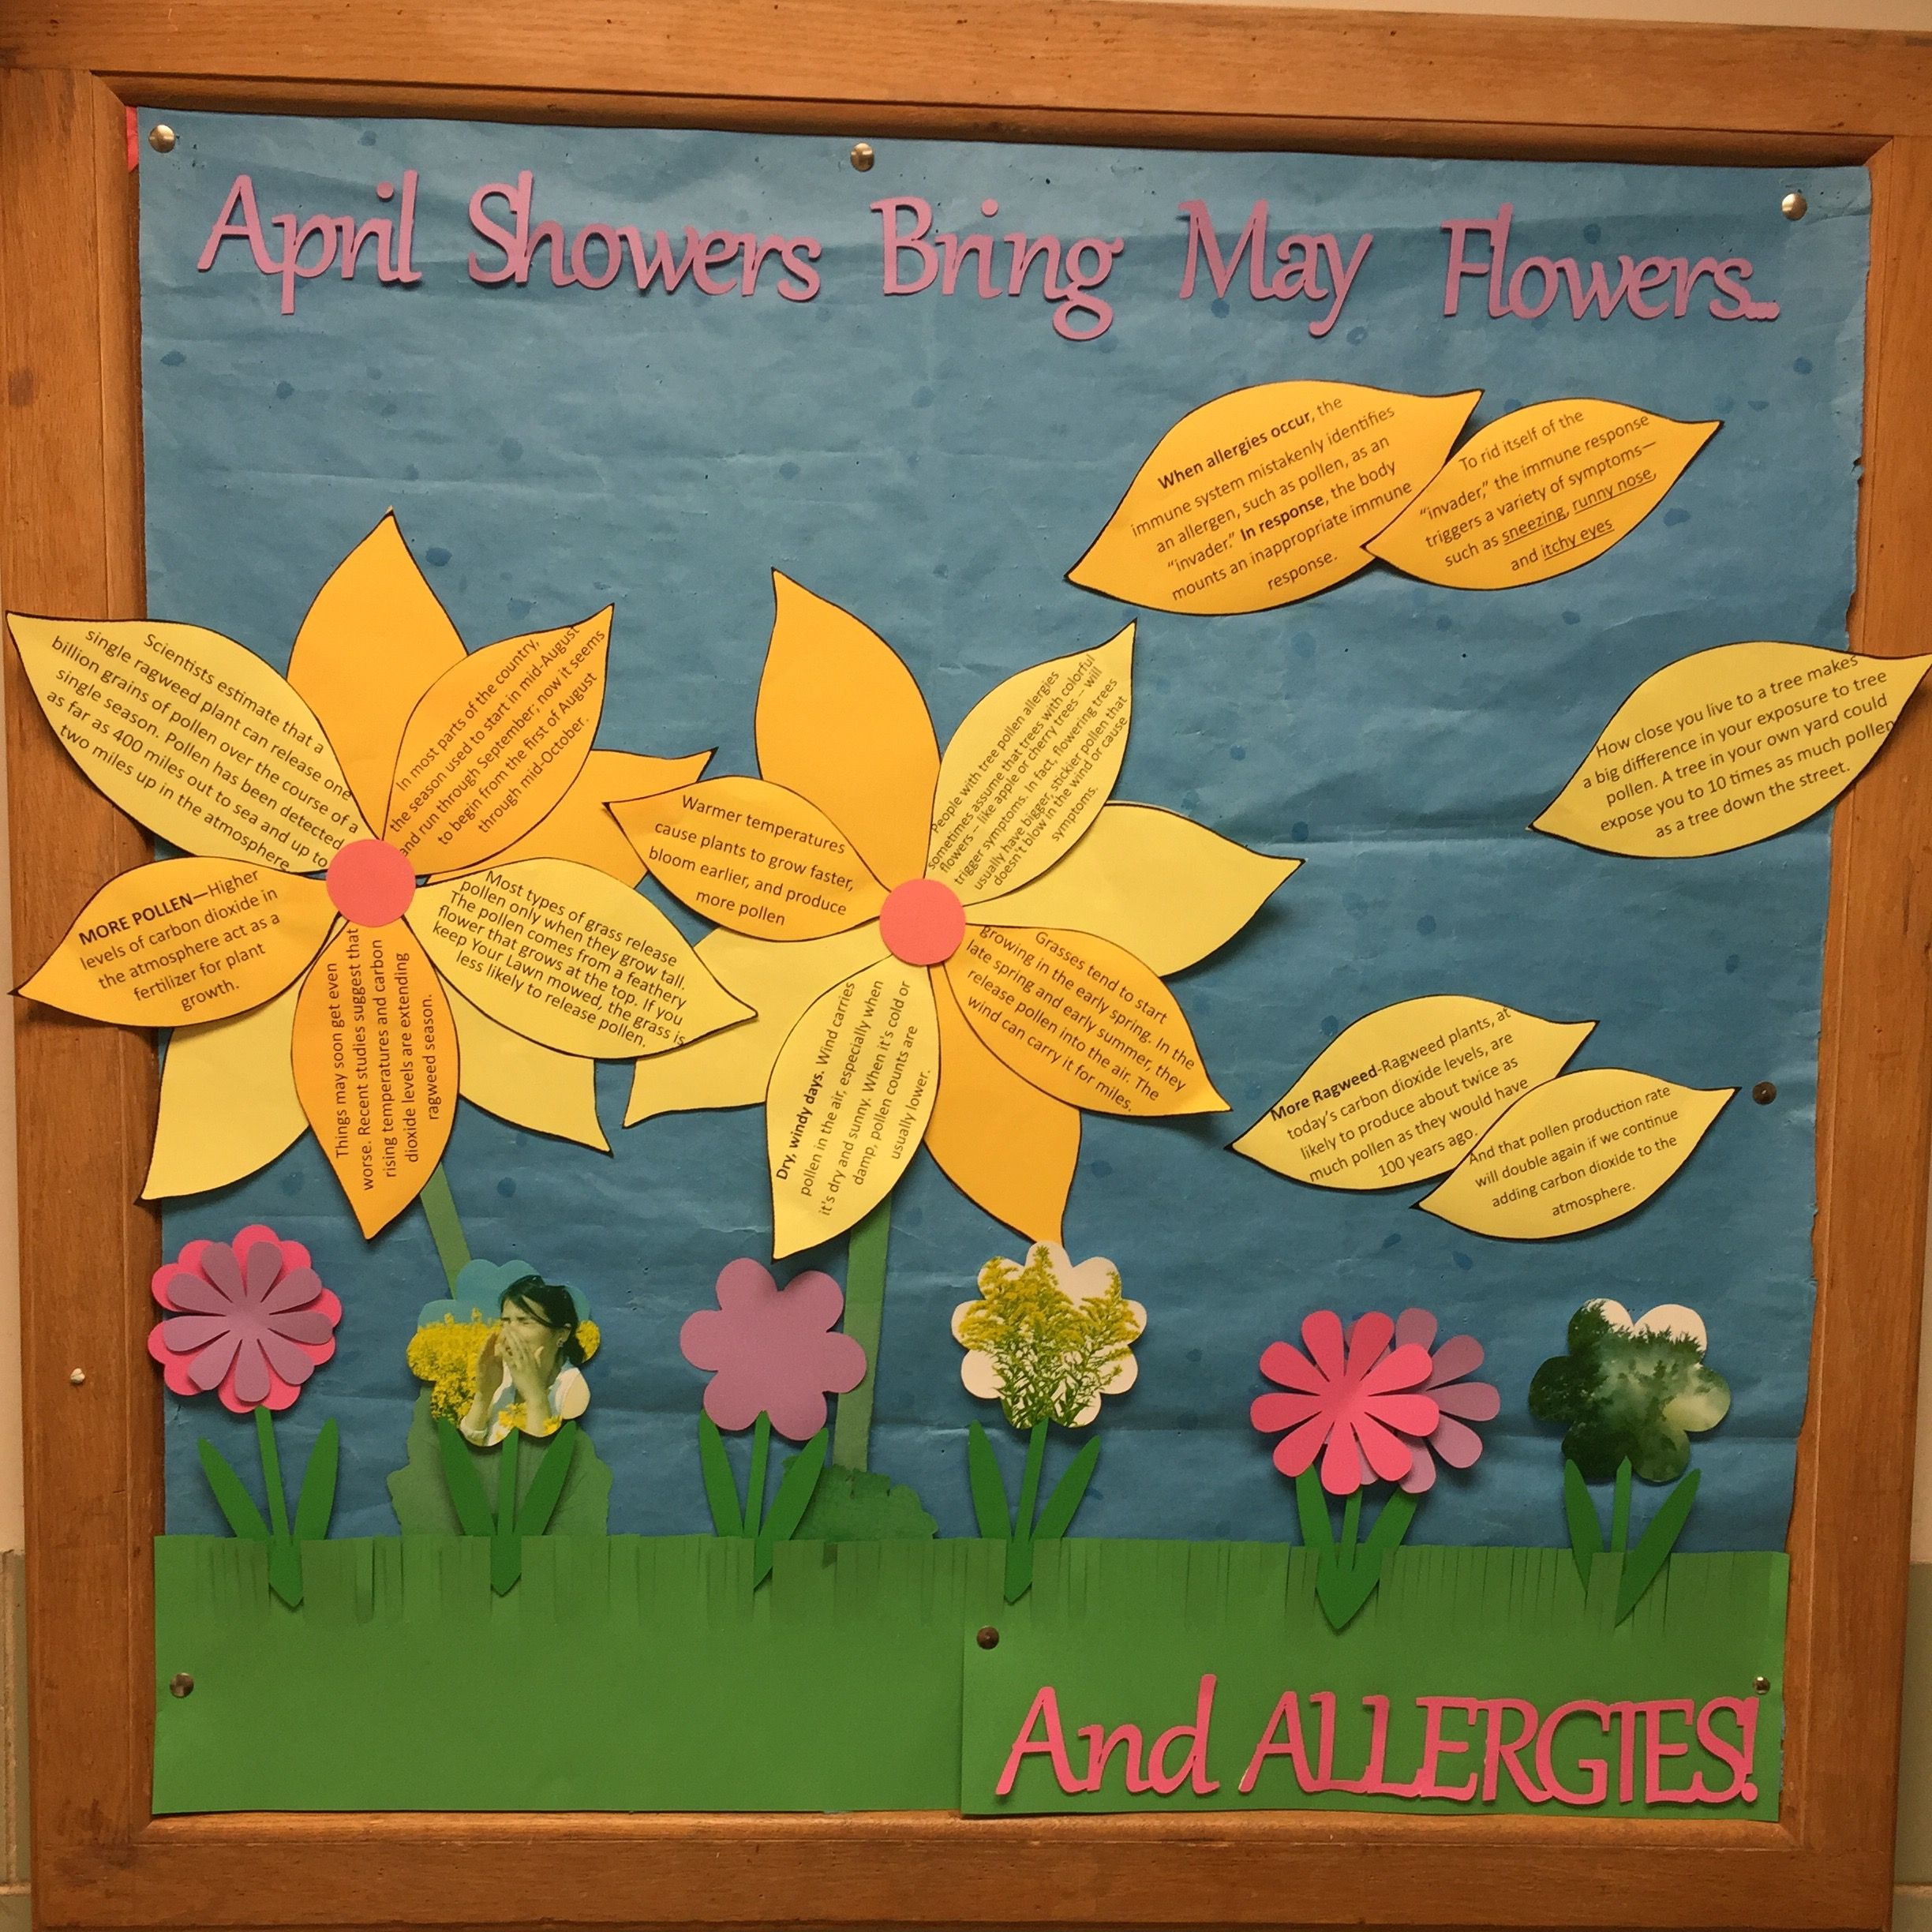 Go green vegetable bulletin board idea myclassroomideas com - April And May Allergy Ragweed Season Bulletin Board School Health